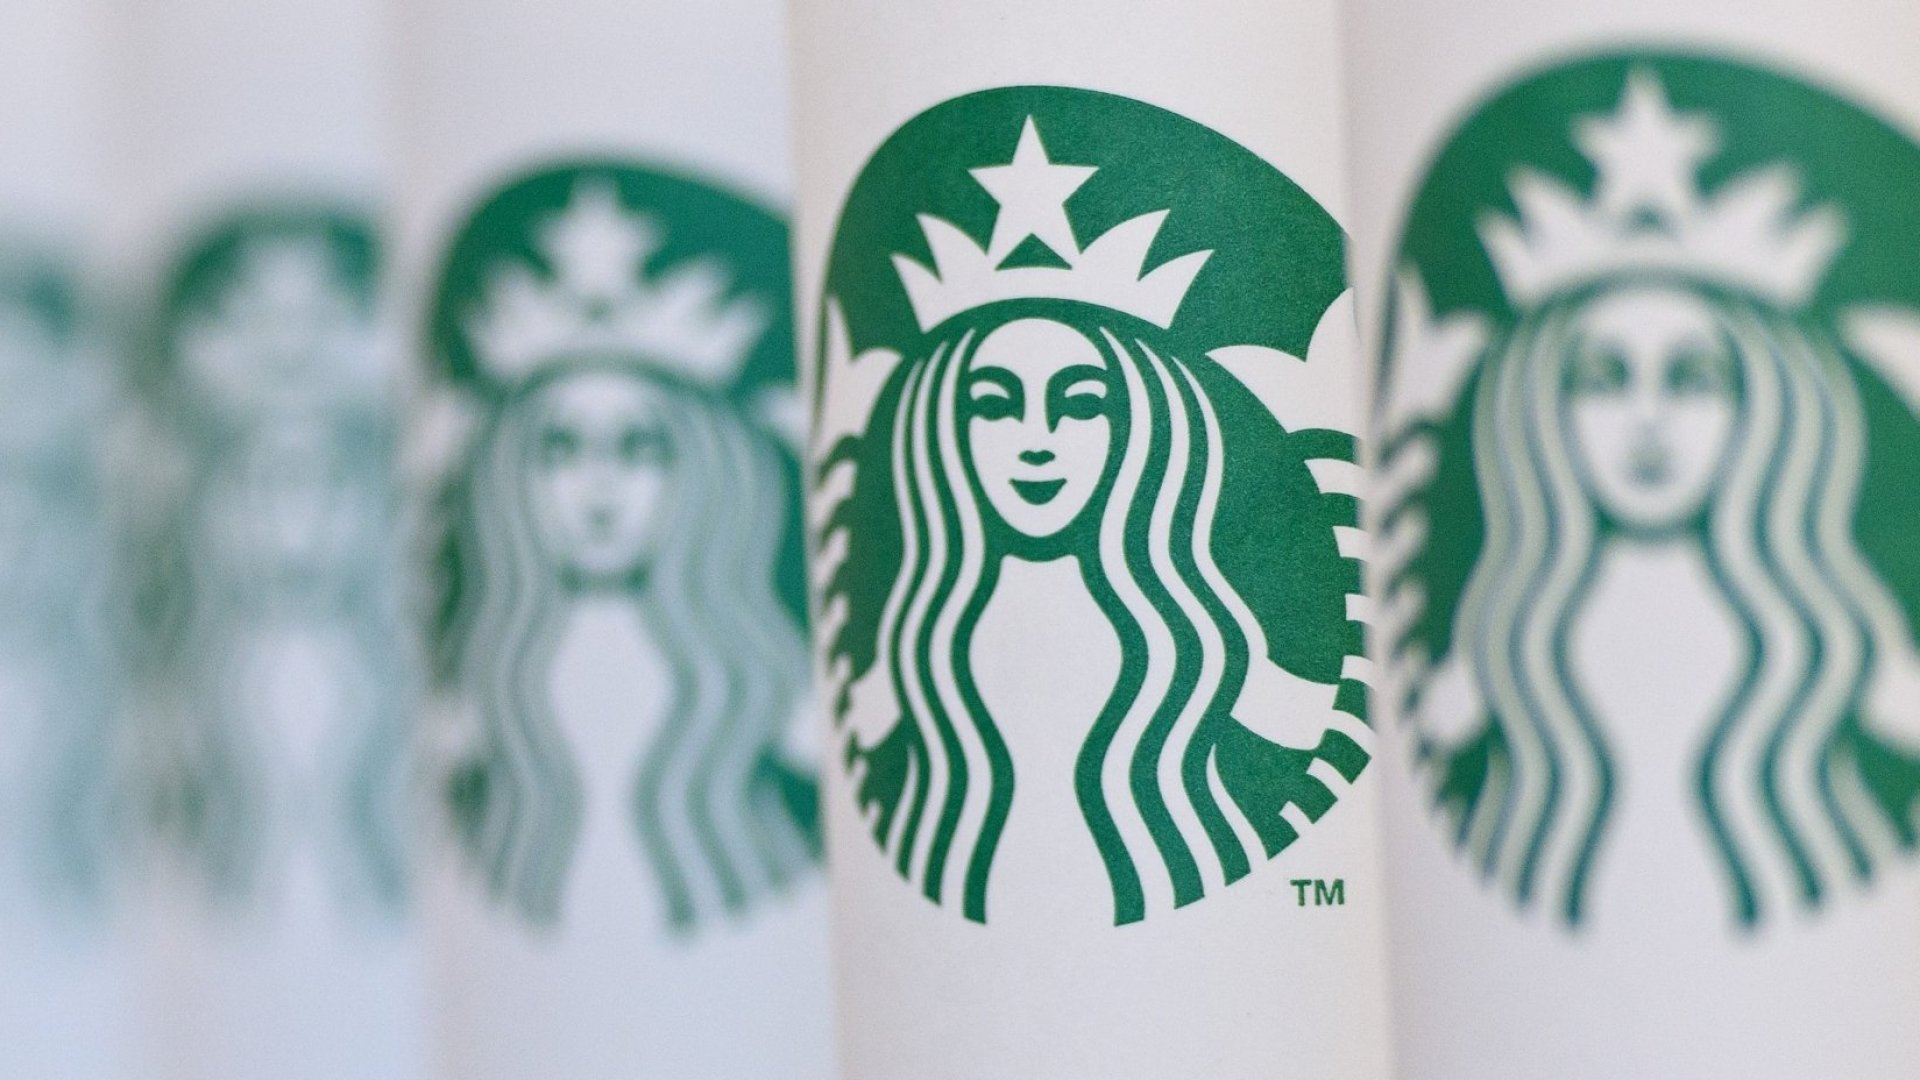 Why Starbucks Nappucinos Could Be the Next Hot Wellness Trend